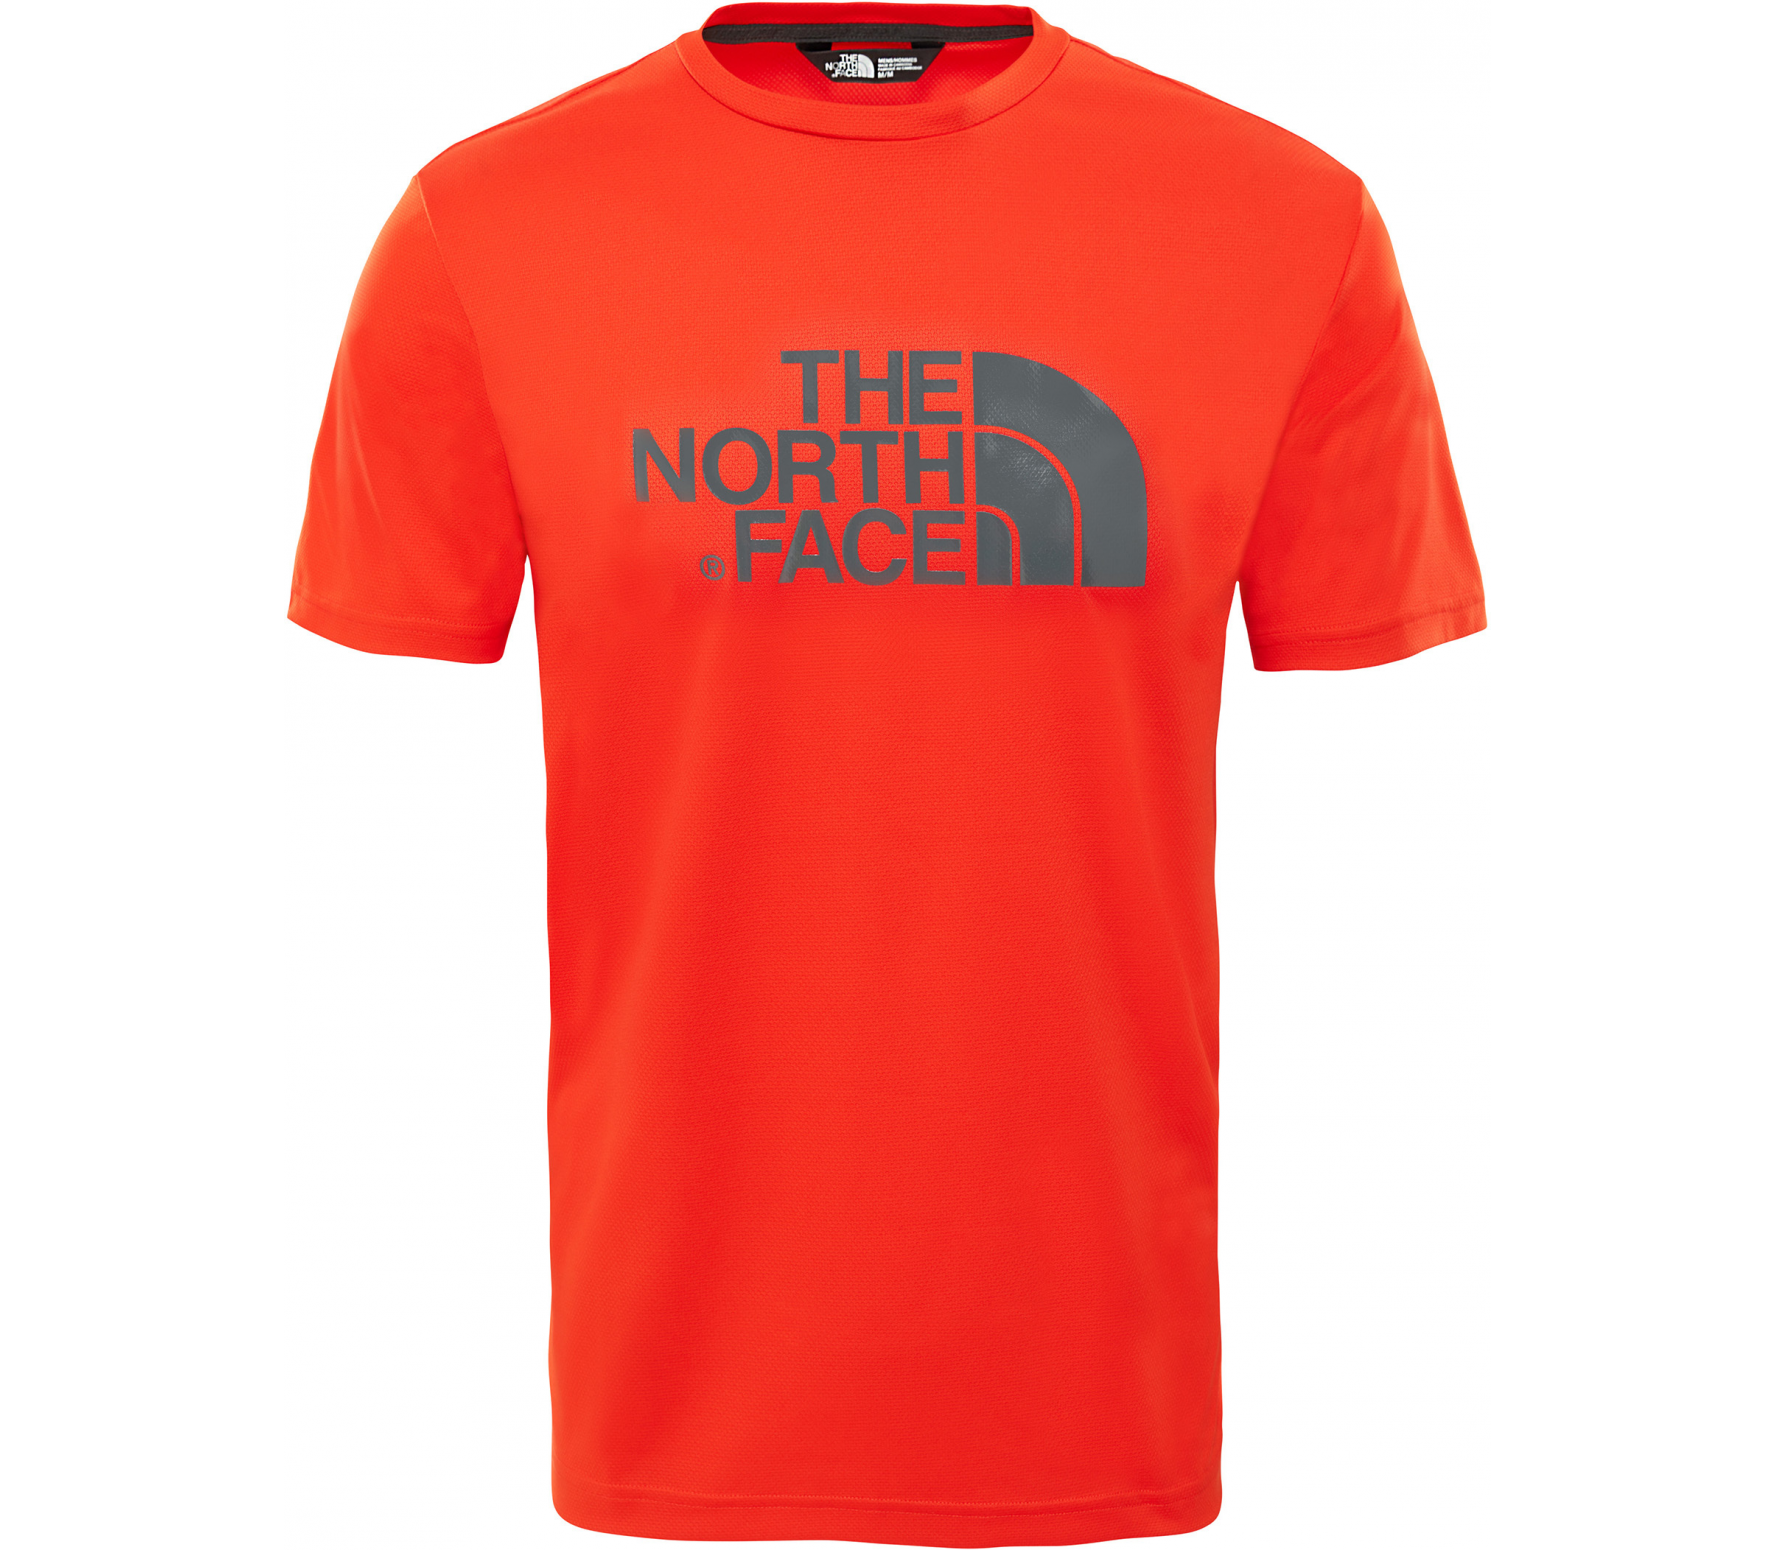 380338386ec5c4 The North Face - Tanken Herren Funktionsshirt (rot) im Online Shop ...